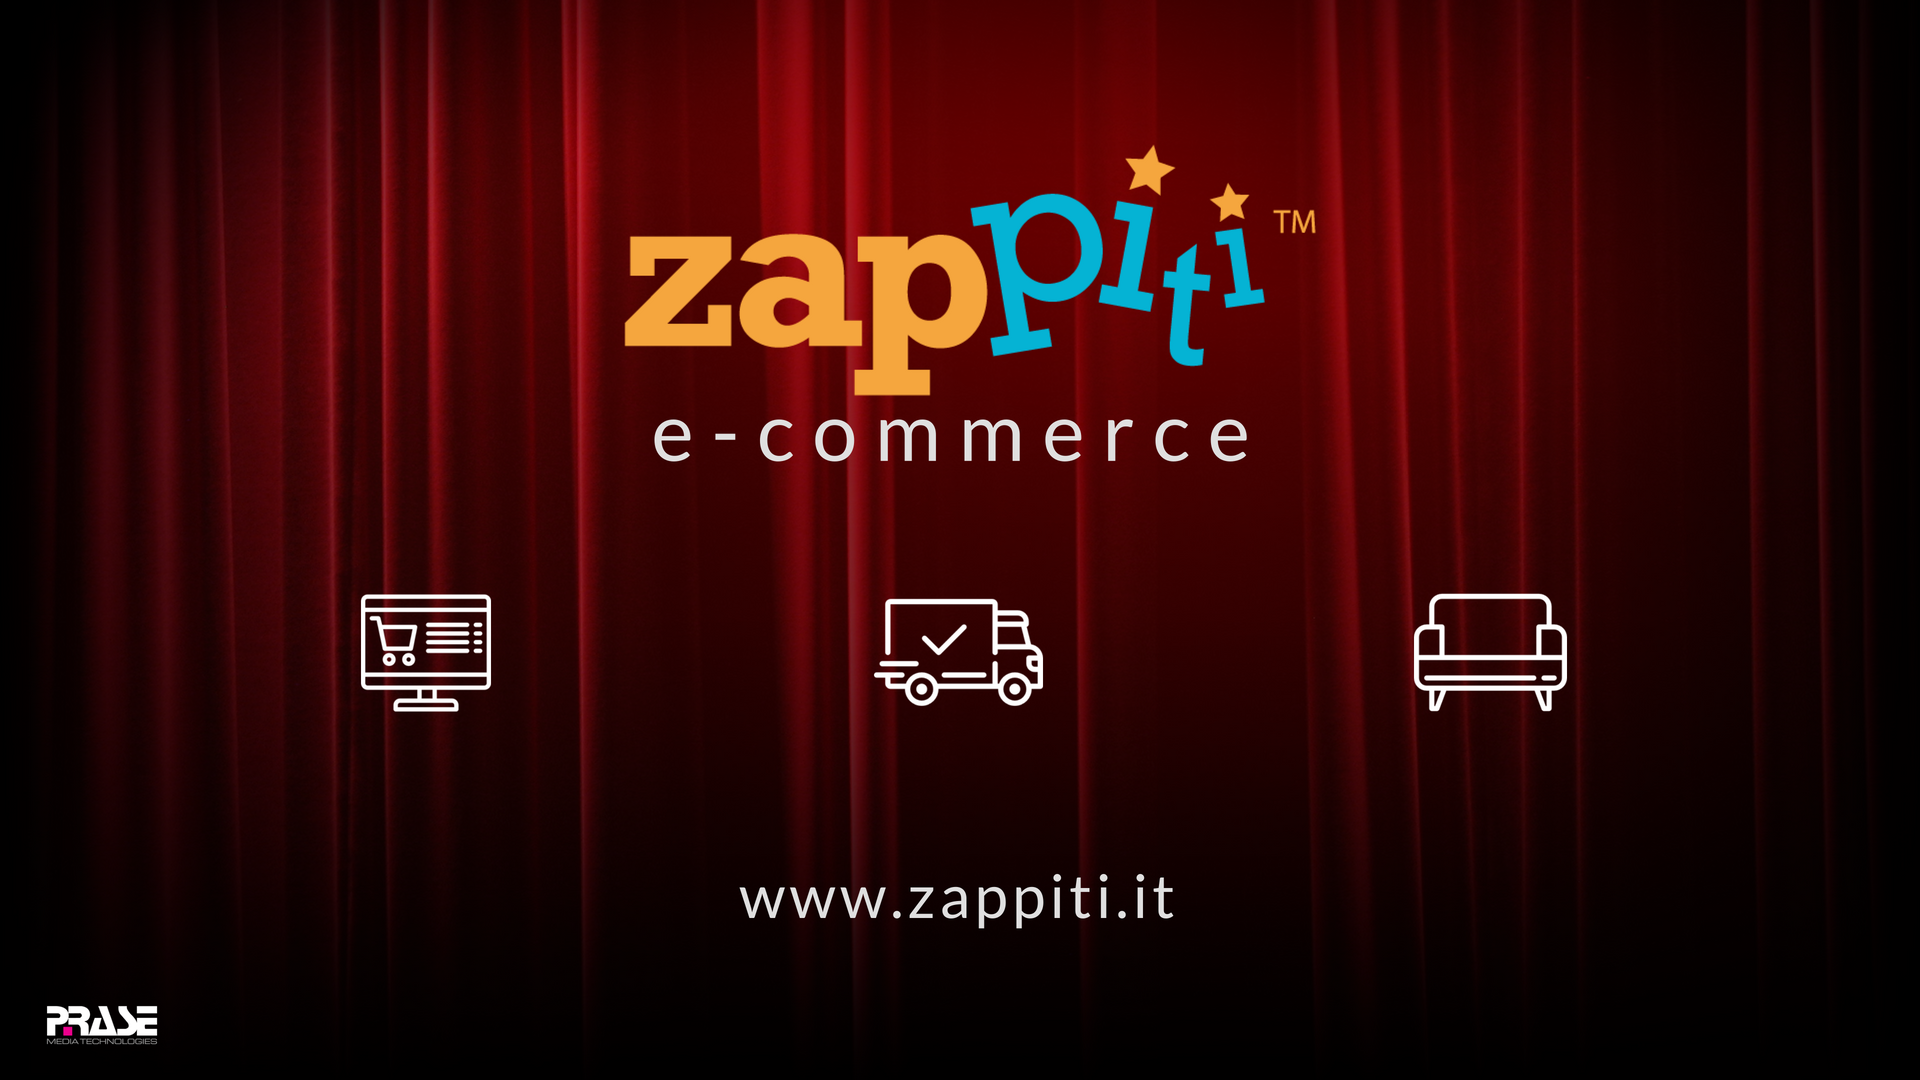 E-commerce zappiti